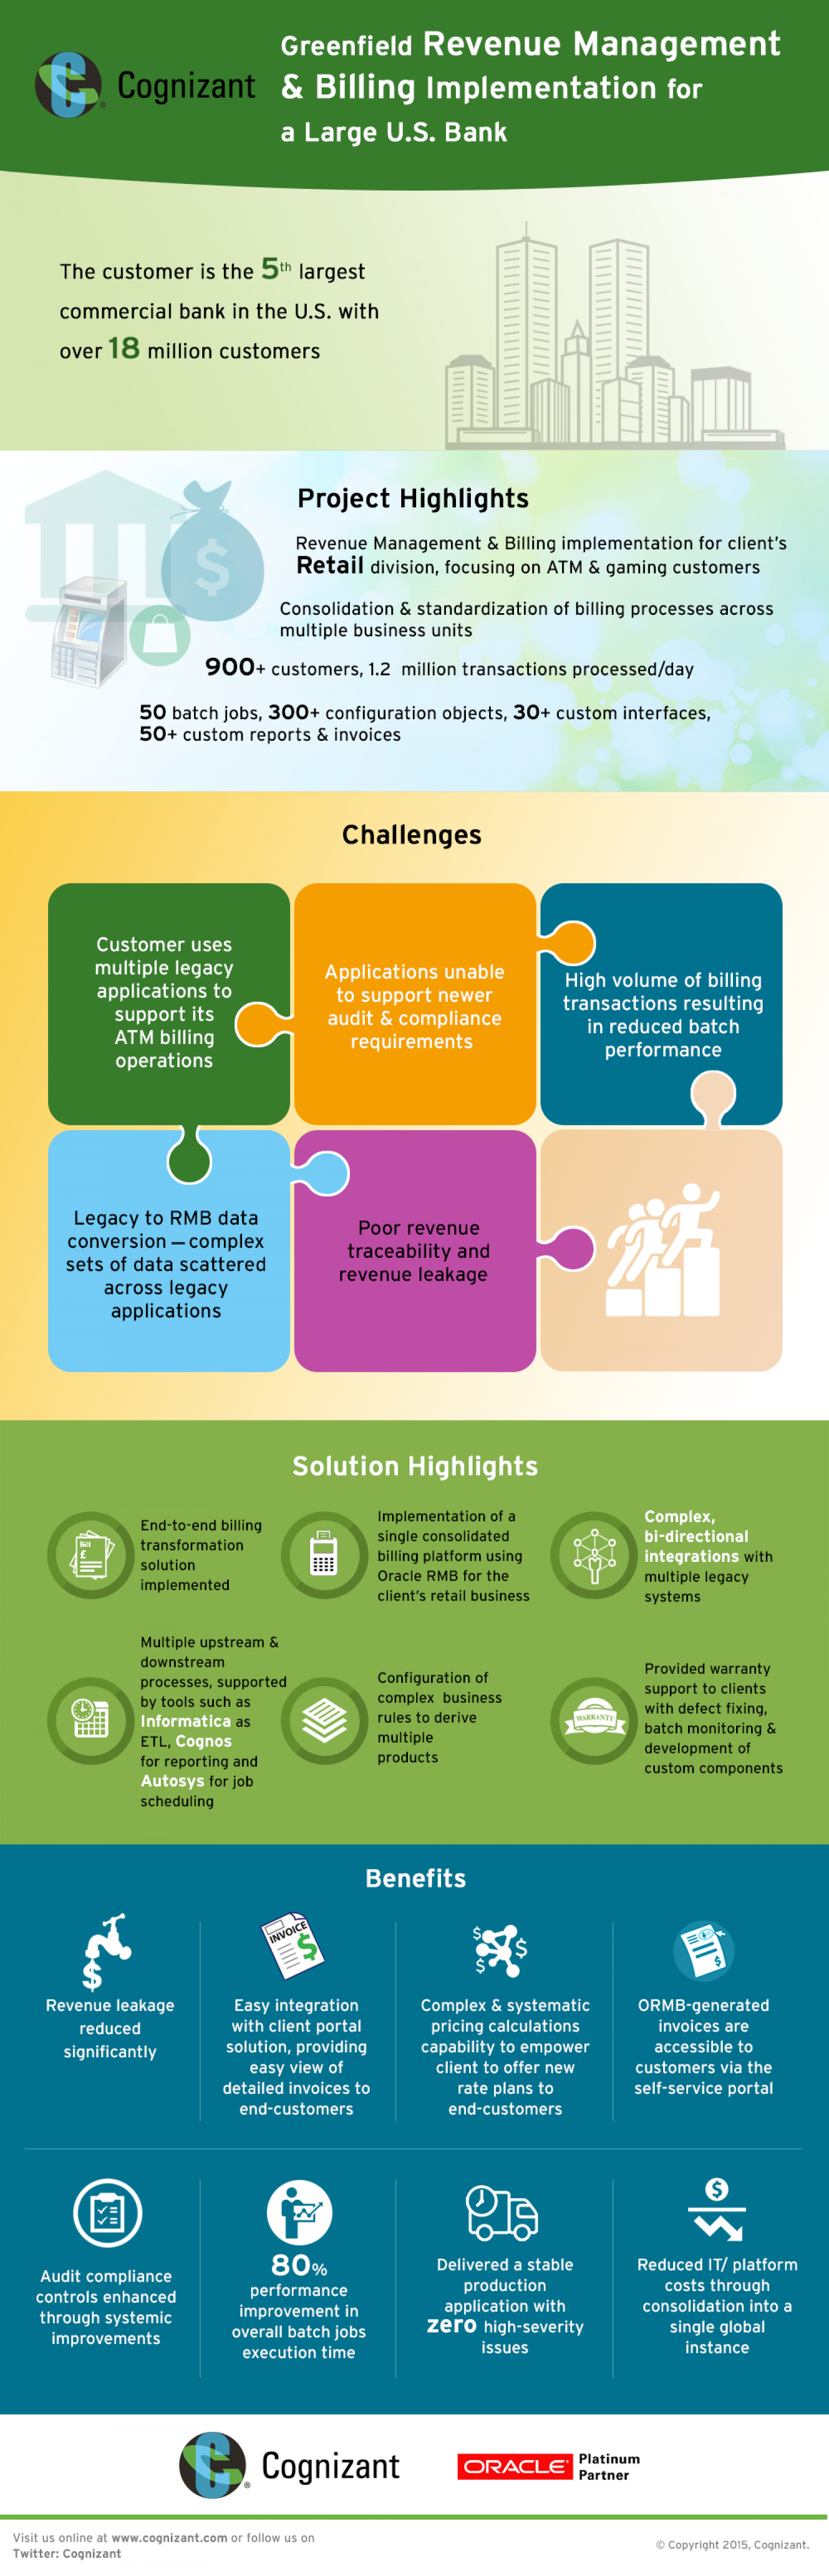 Cognizant's Revenue Management & Billing (RMB) Implementation for a Large U.S. Bank Consolidates and Standardizes Billing Processes Across Multiple Business Units  Infographic